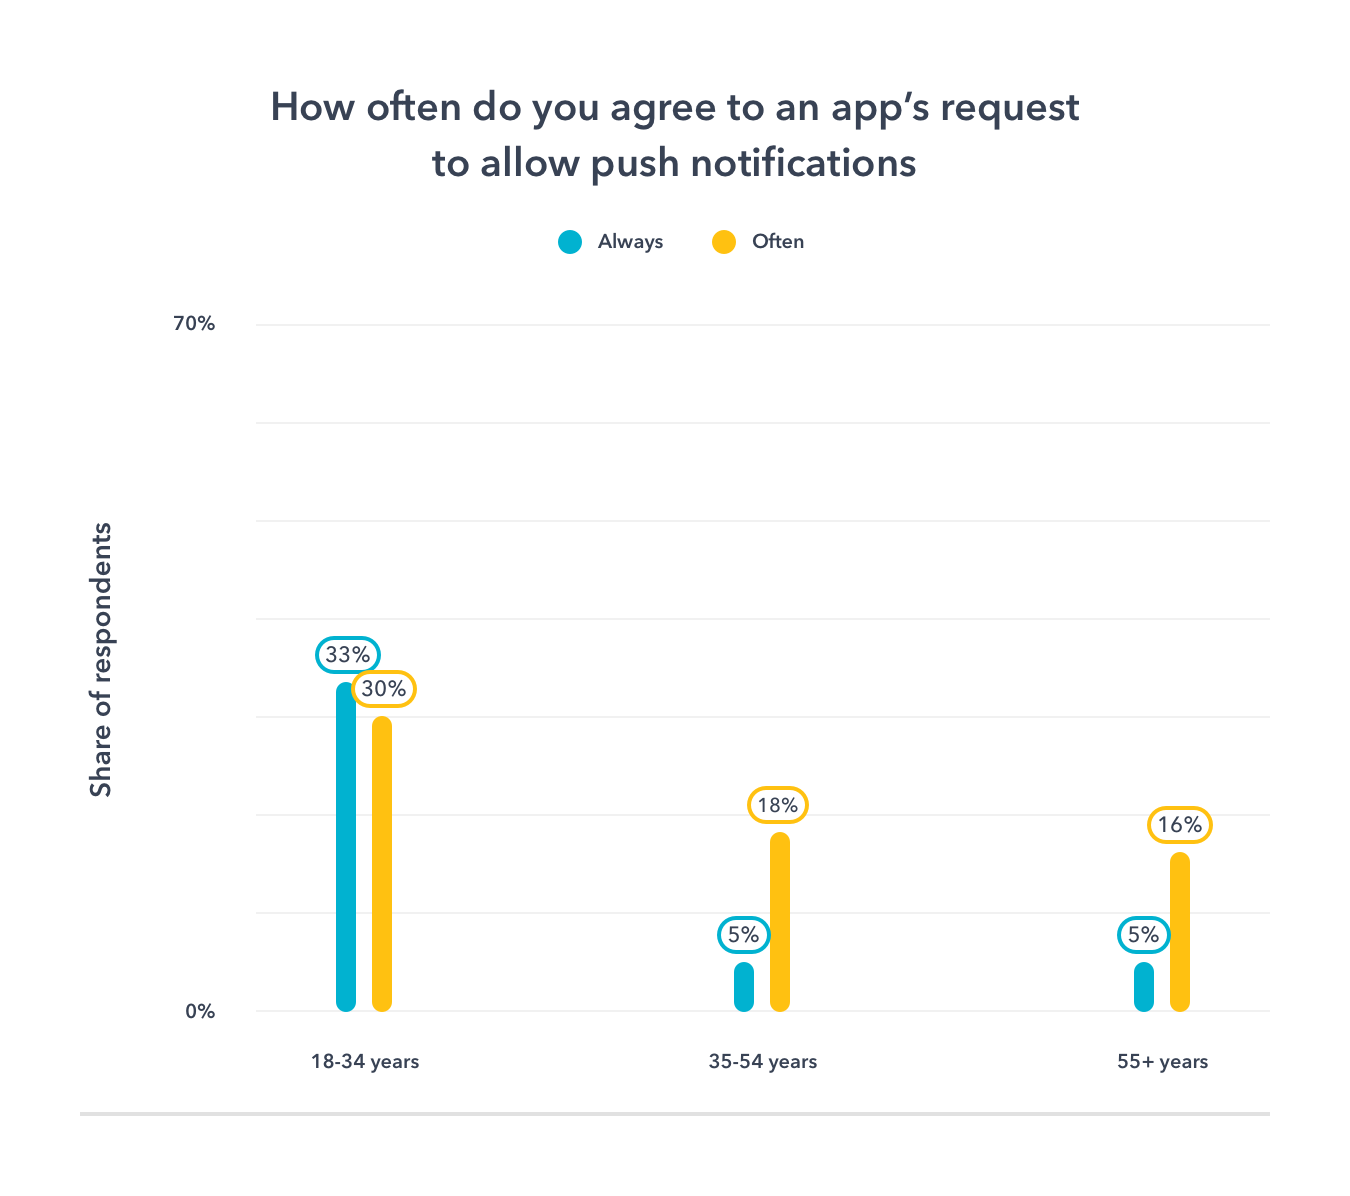 how often do you agree to an apps request to allow mobile push notifications